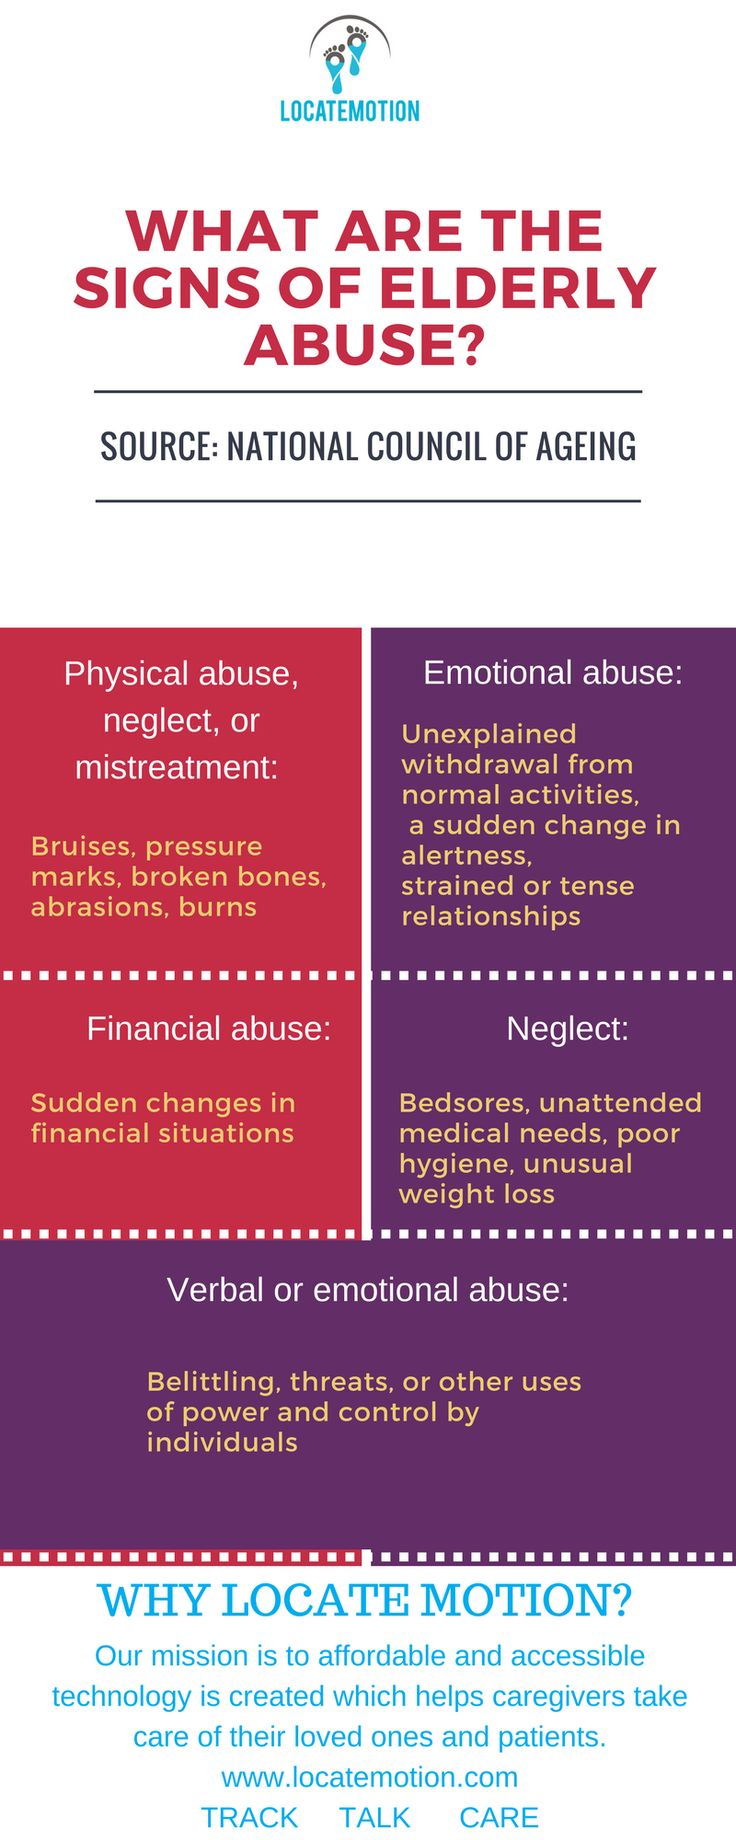 The infographic below details the signs of elderly abuse. Prevent elderly abuse by using LocateMotion - a connectivity solution that tracks, talks and takes care of your loved ones in real time. With LocateMotion you can: ✅ Talk to them 🗣 ✅ Know your loved ones location 📍 and location history ✅ Take pictures  of their surroundings 📷 http://locatemotion.com/?utm_content=buffer082a4&utm_medium=social&utm_source=pinterest.com&utm_campaign=buffer #caregiver #dementiacare #alzheimerscare…